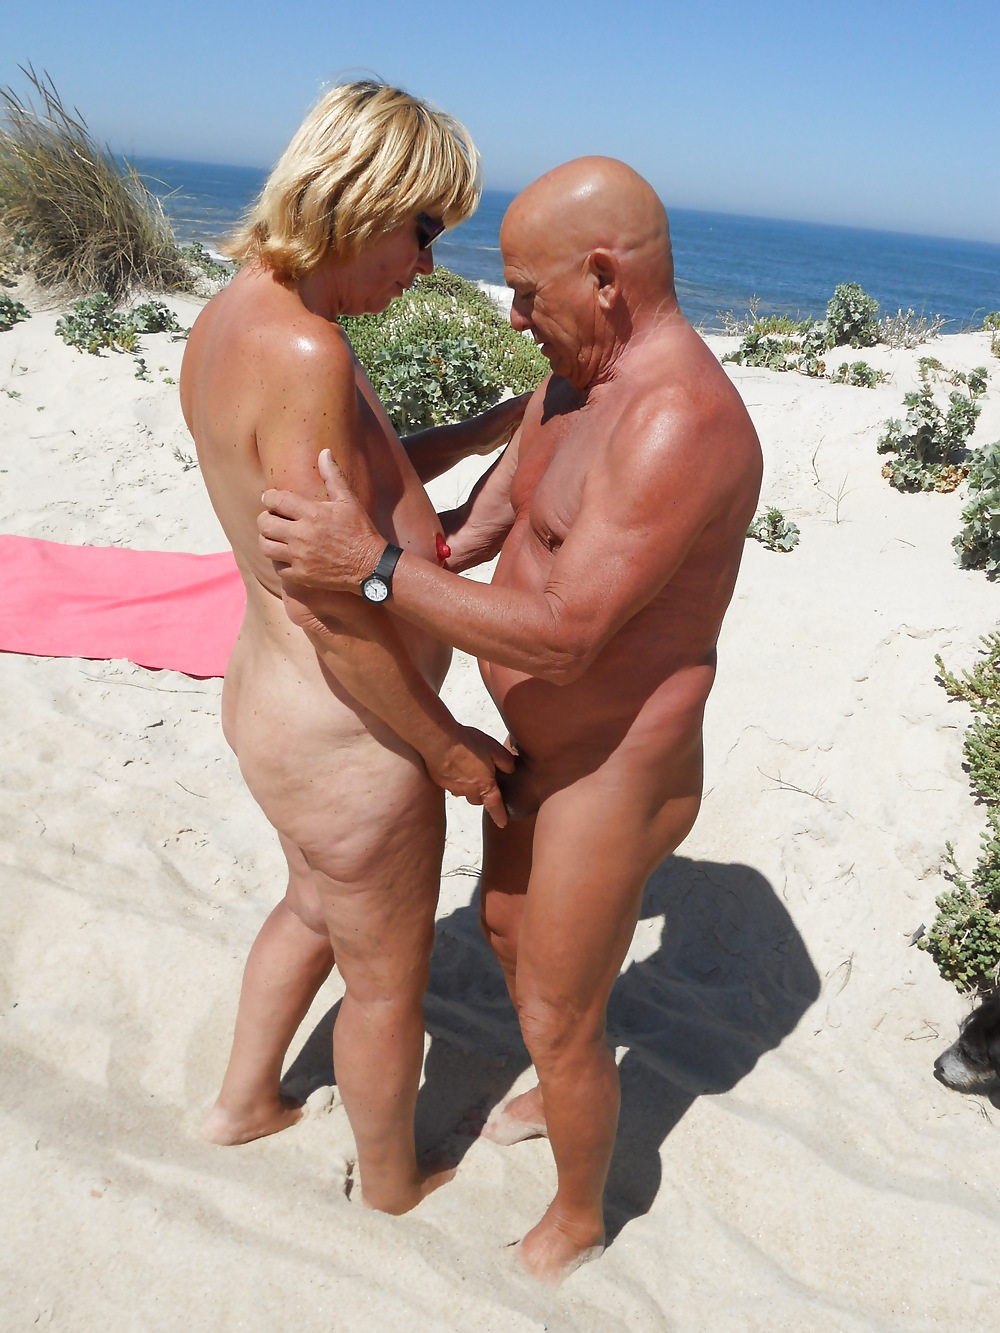 mature-sex-on-the-beach-amateur-young-nude-wives